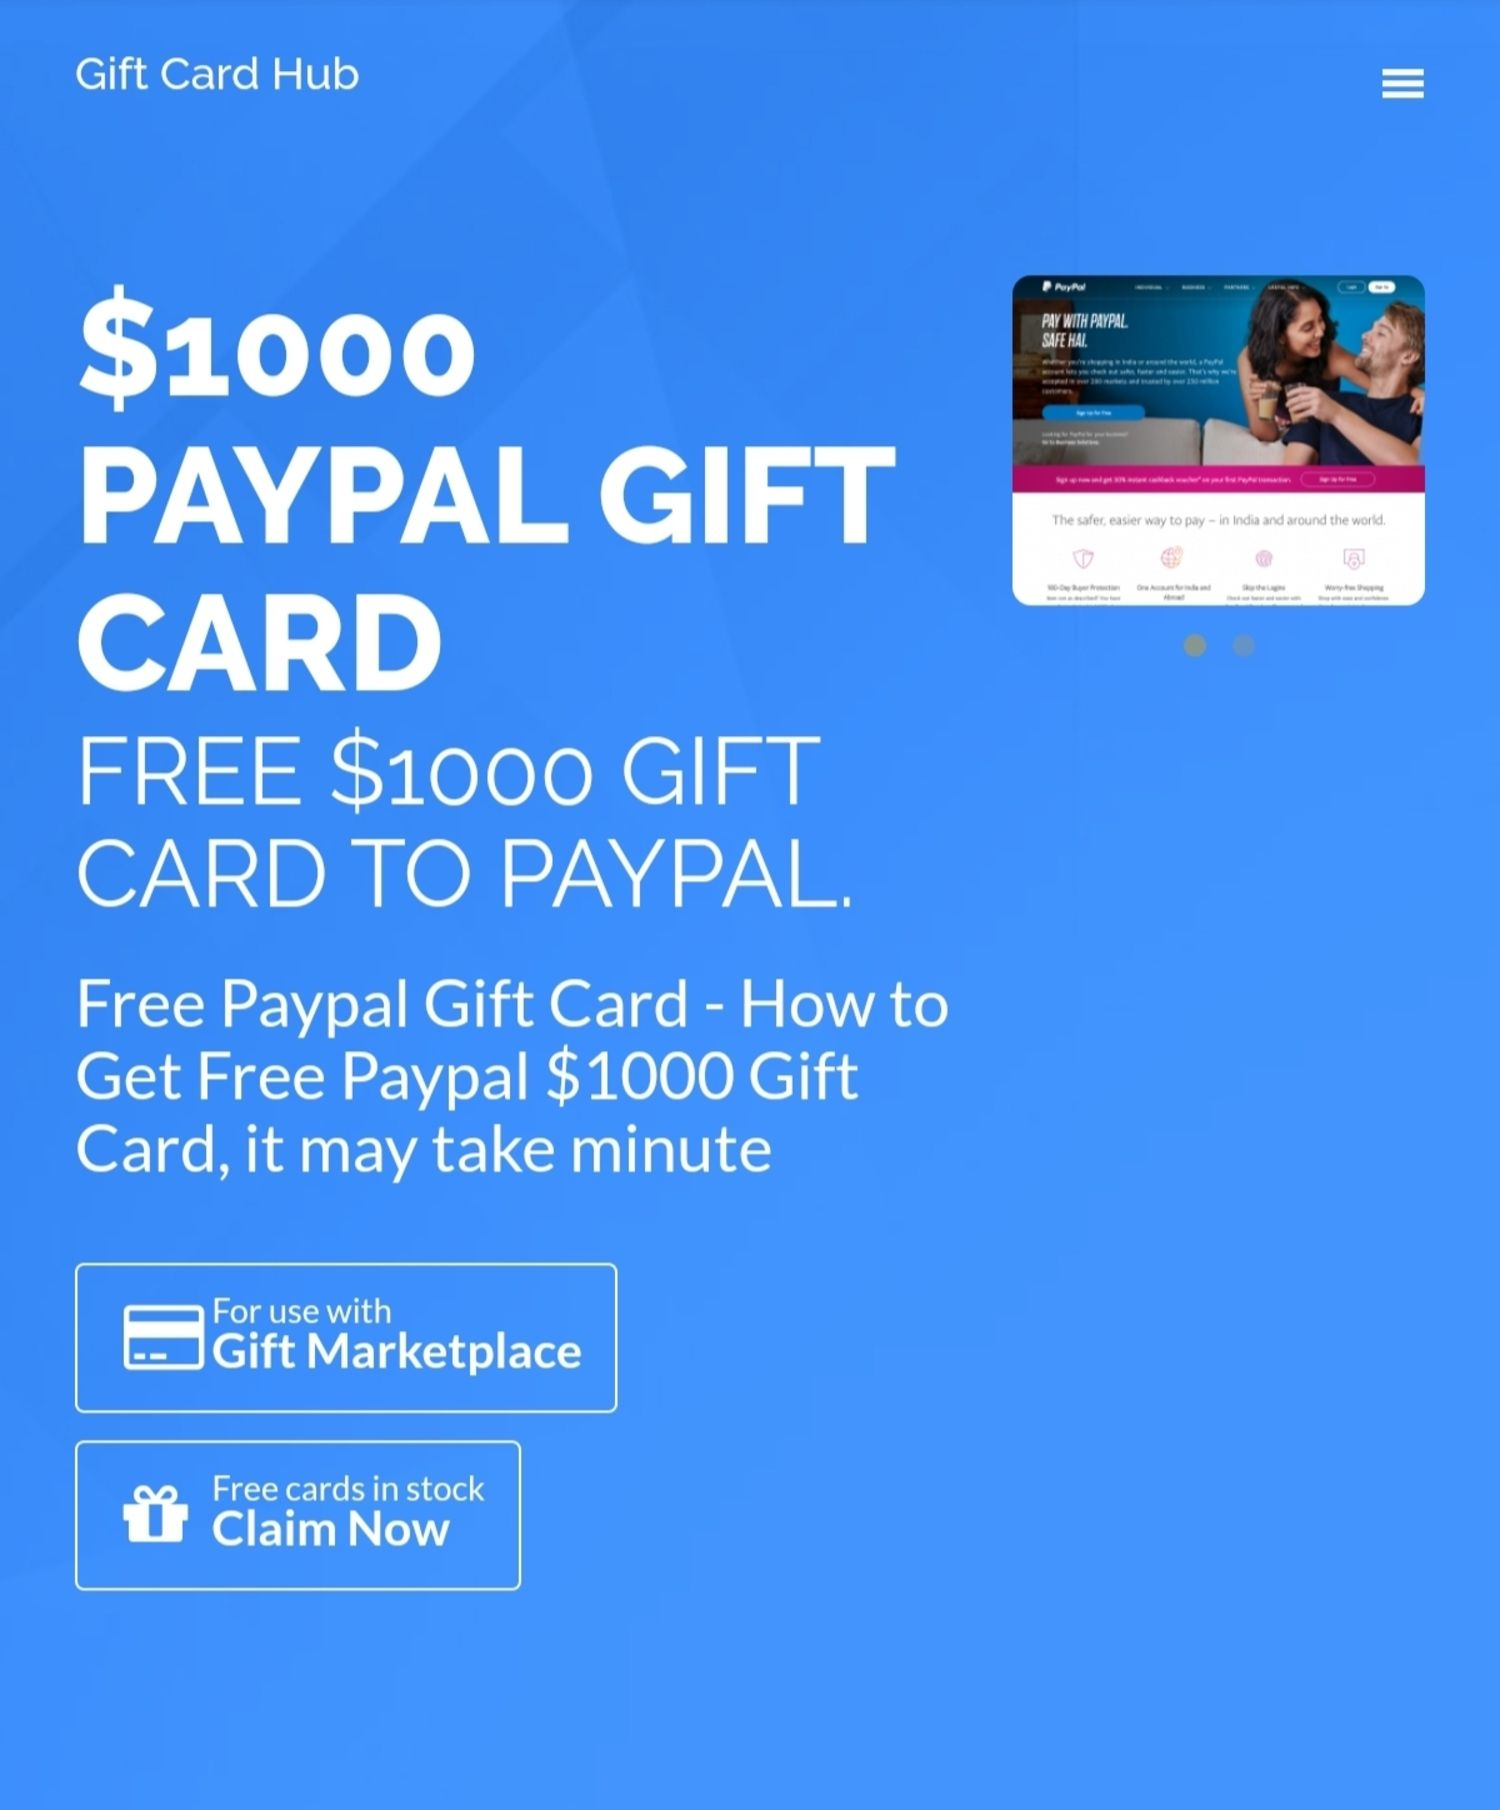 Get Free 1000 Paypal Gift Card Elink Paypal Gift Card Cards Gift Card